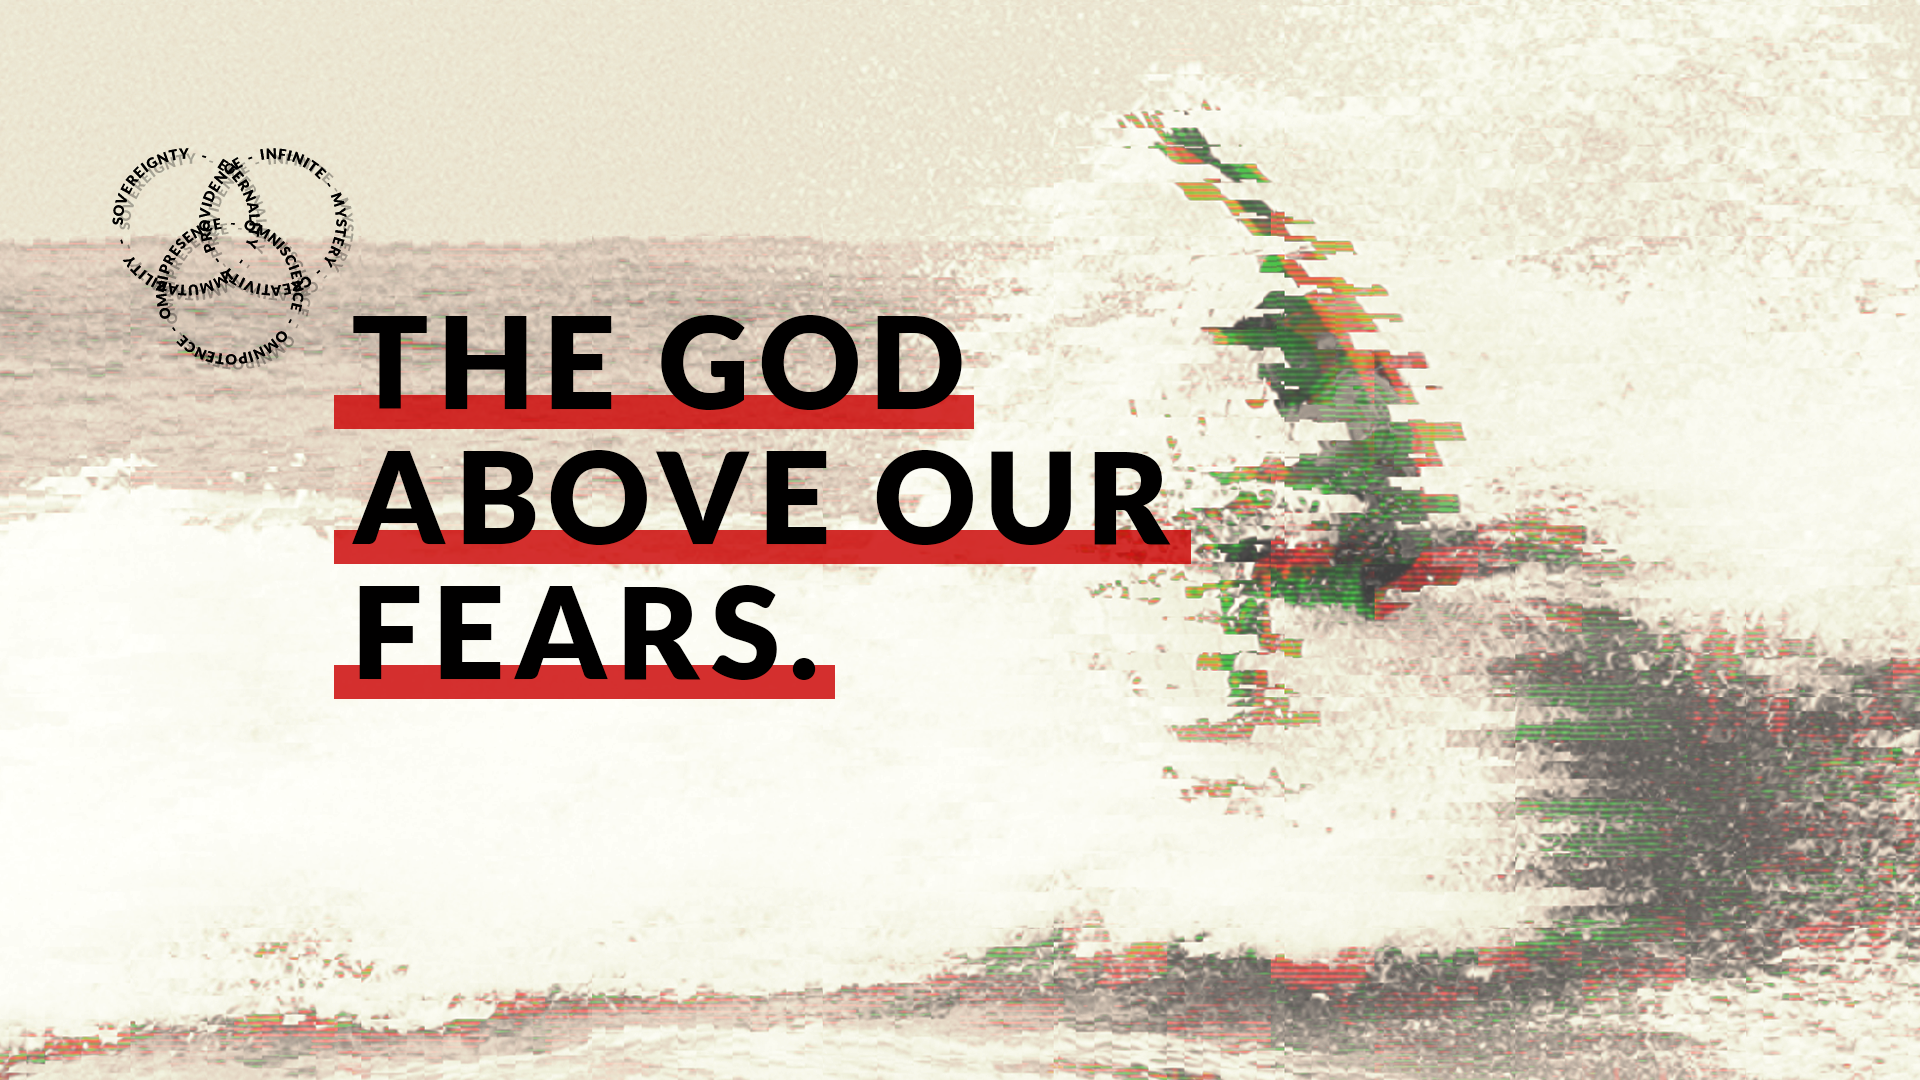 The_God-Above_Our_Fears_FINAL_Slide_Hero_1920x1080.png